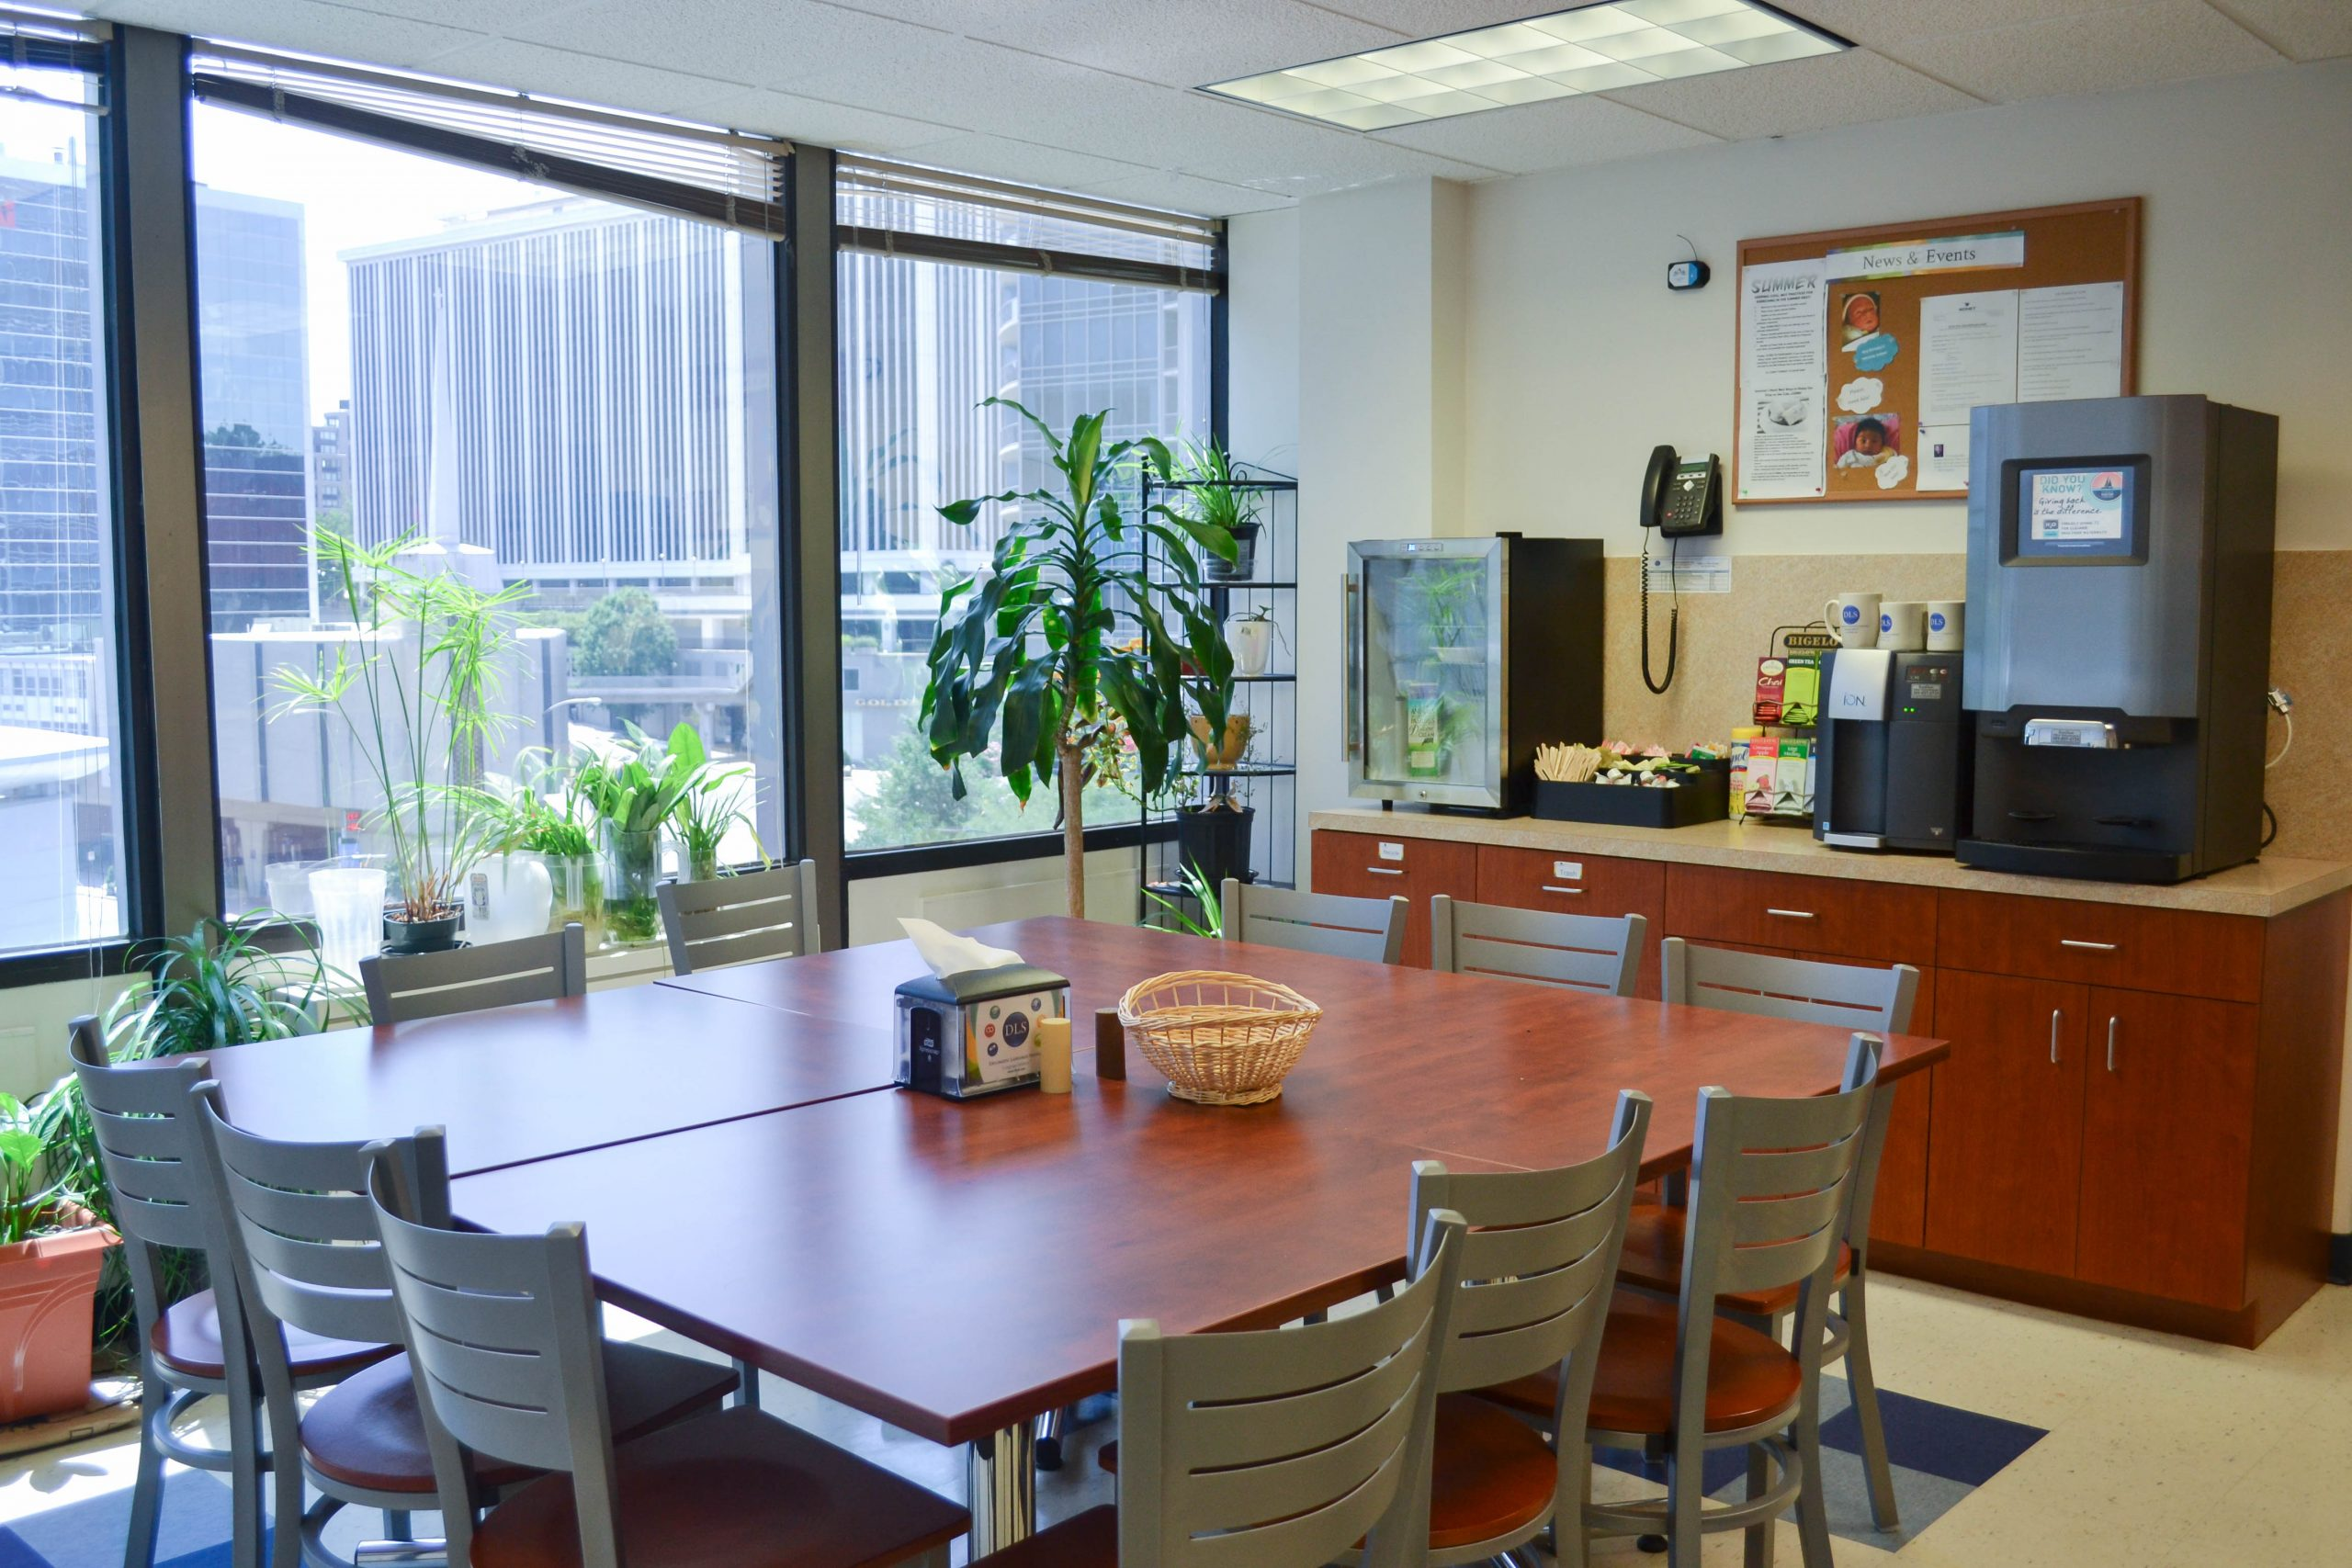 Diplomatic Language Services Arlington location kitchen and dining area